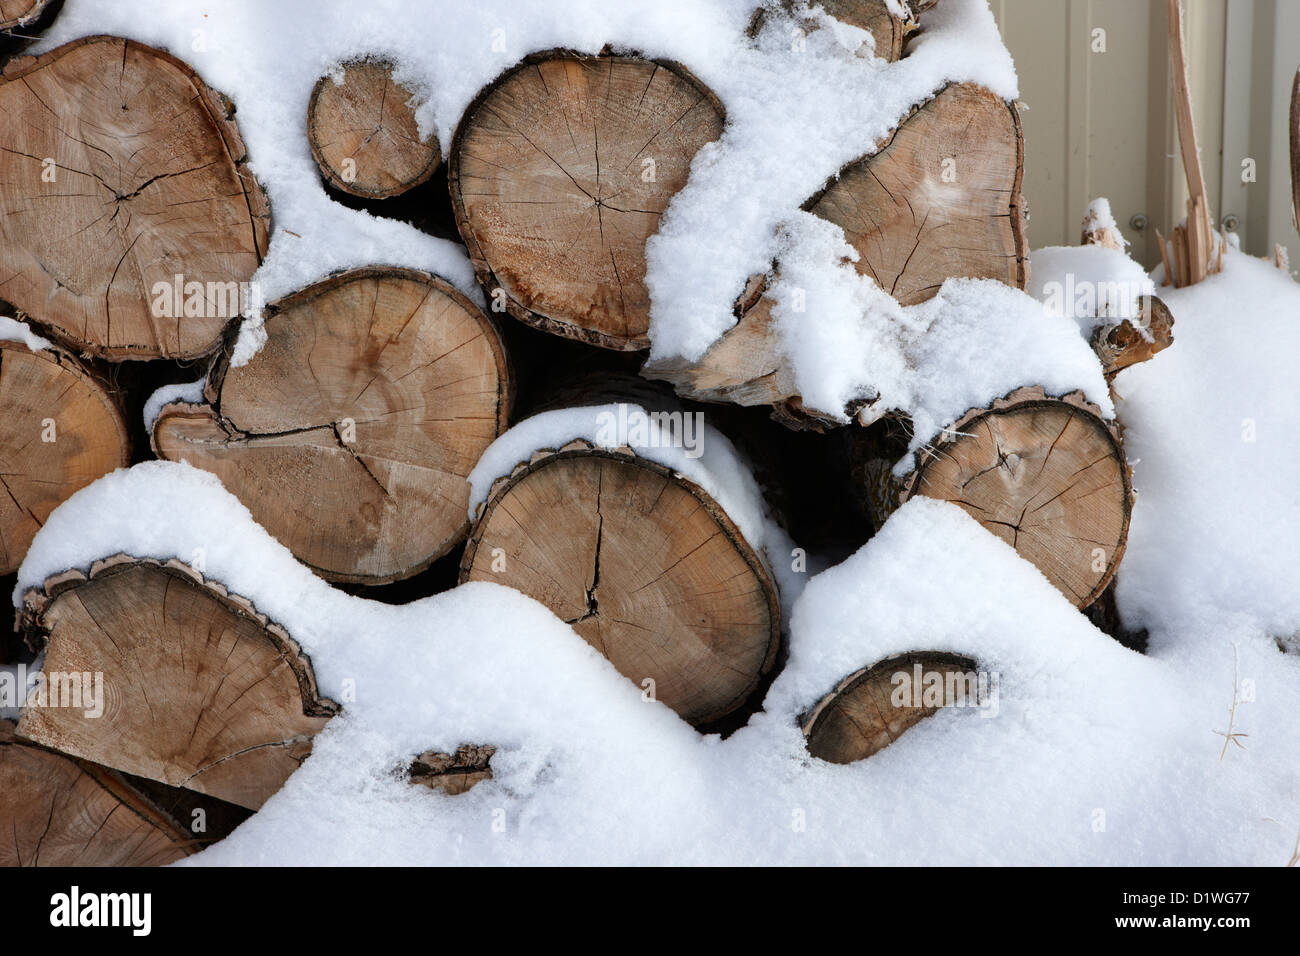 pile of logs covered in snow in Forget Saskatchewan Canada - Stock Image